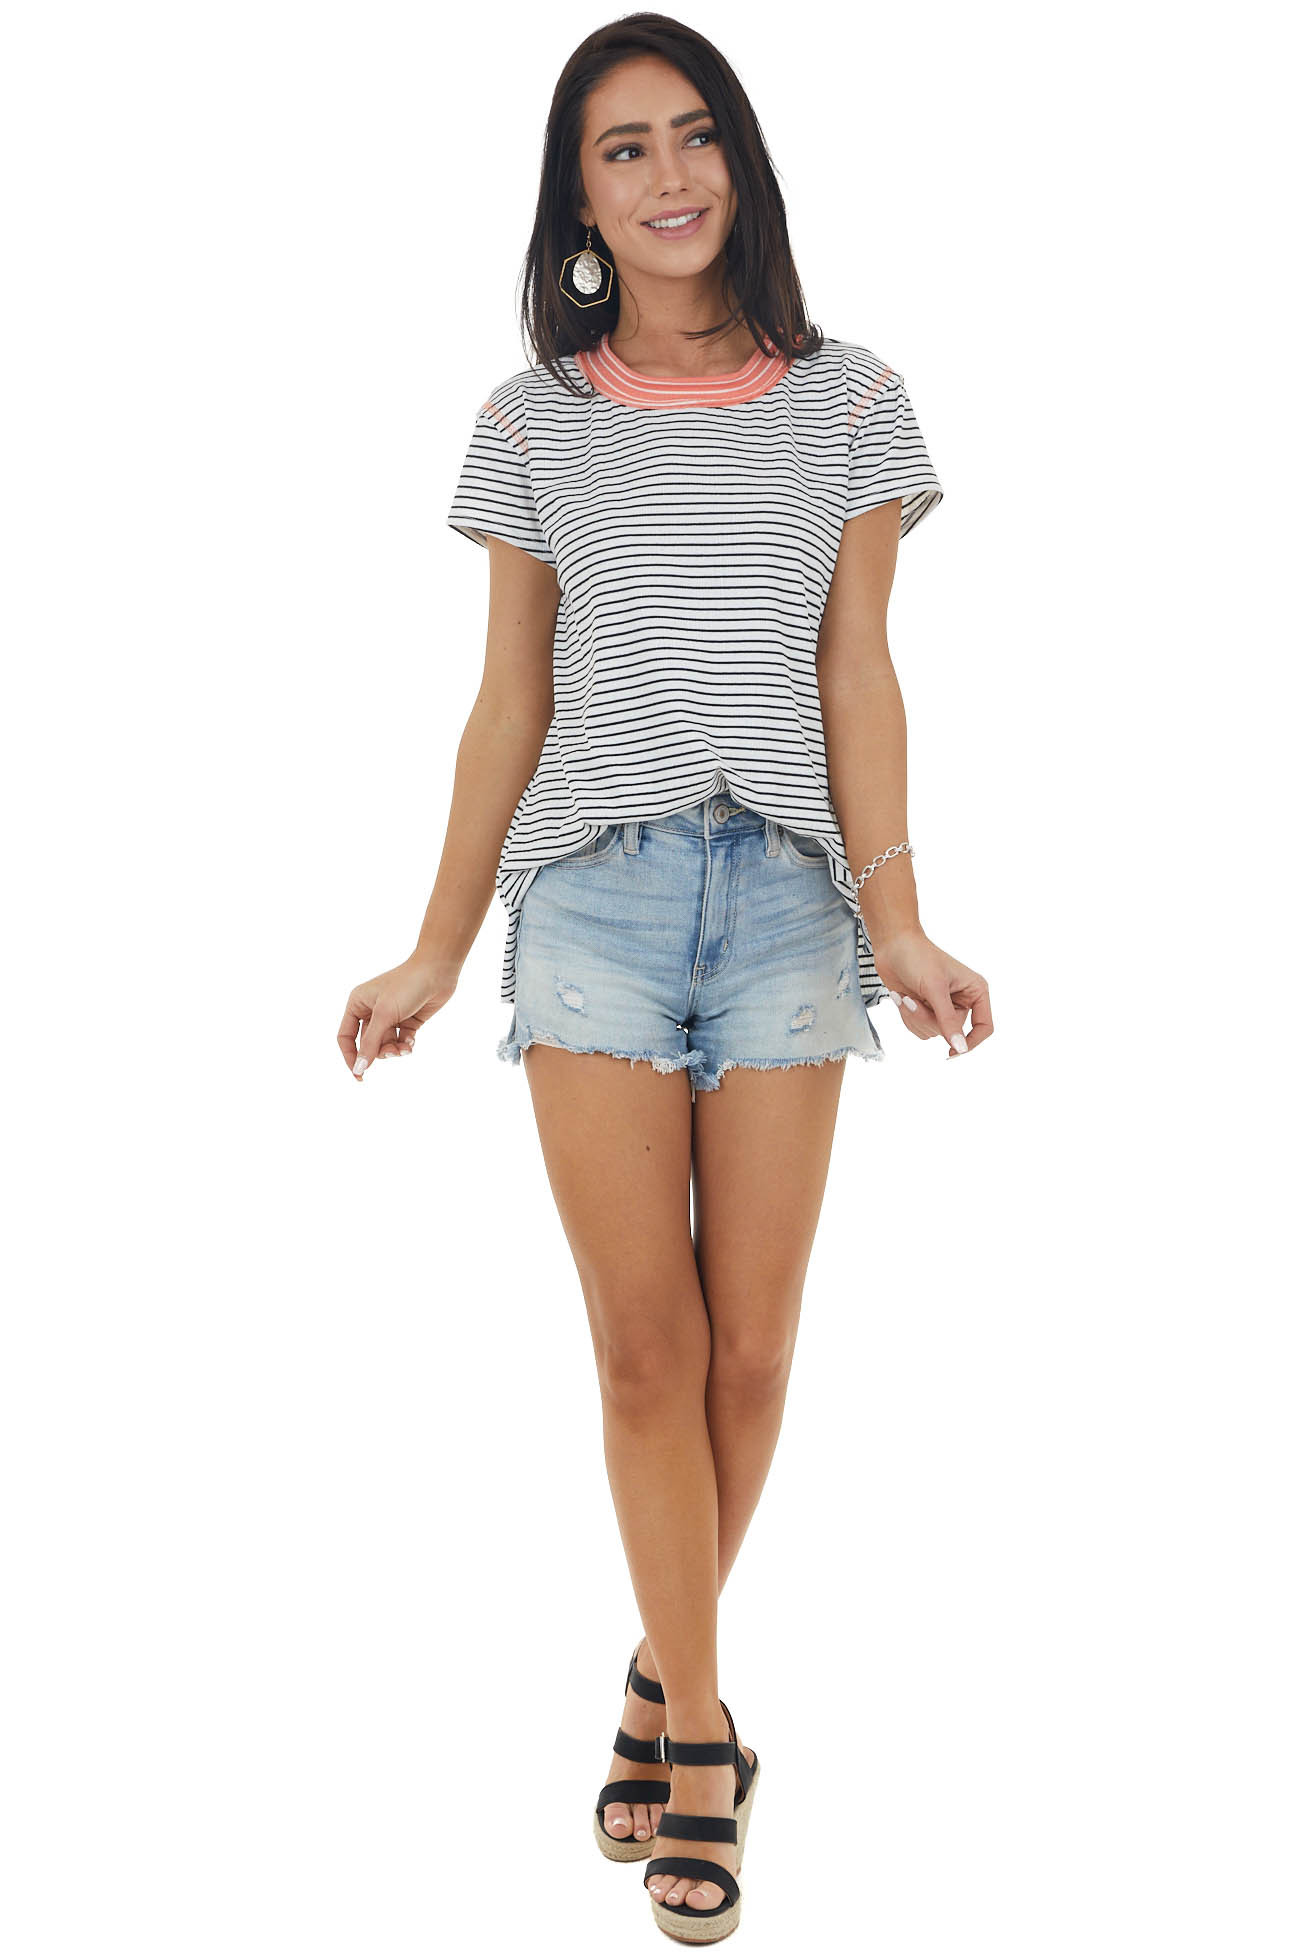 Off White and Black Striped Short Sleeved High Low Top